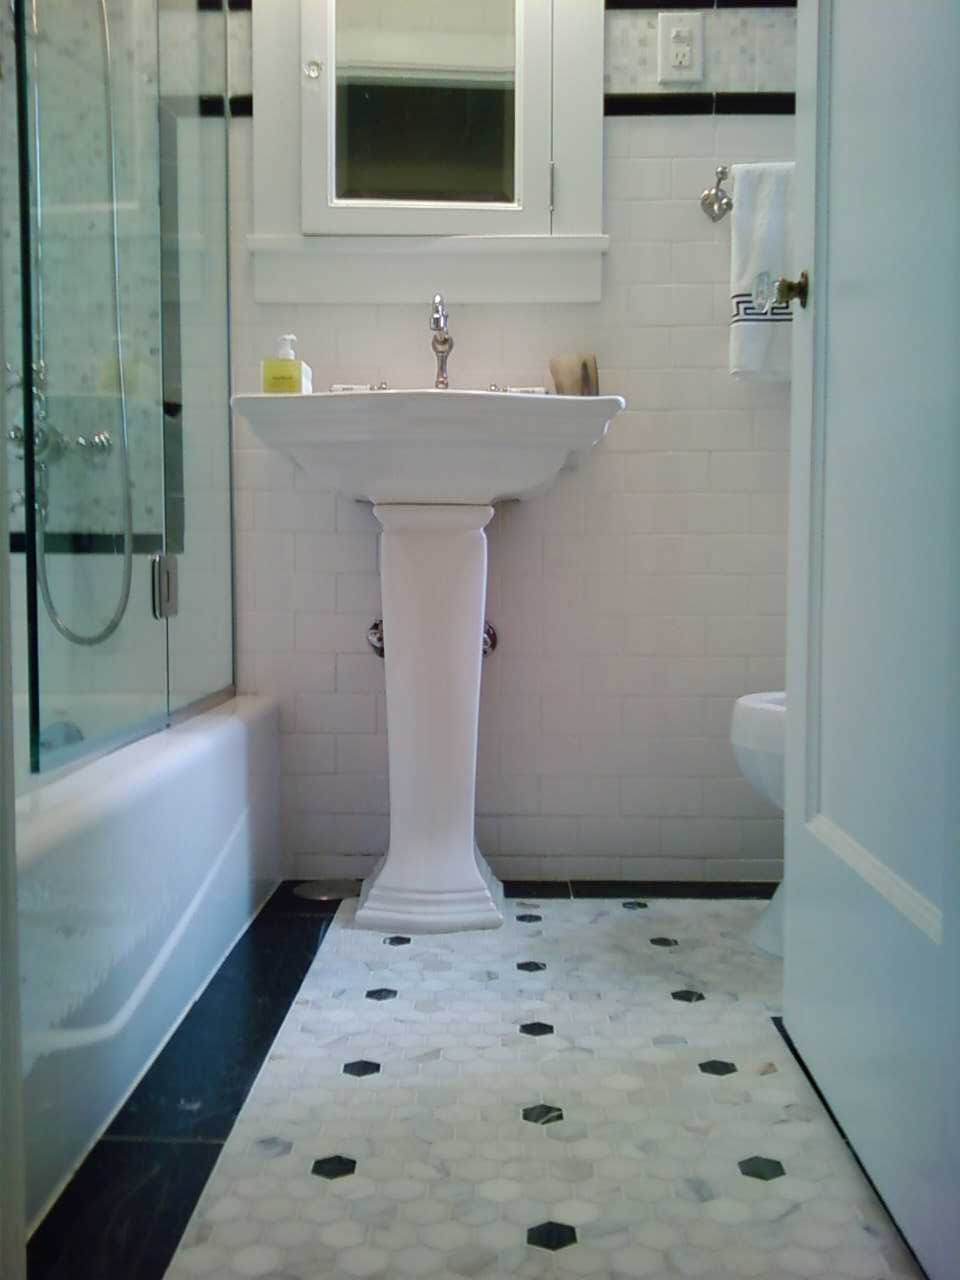 toilets cleaning moldy grout tiling bathroom surrounds and bathroom